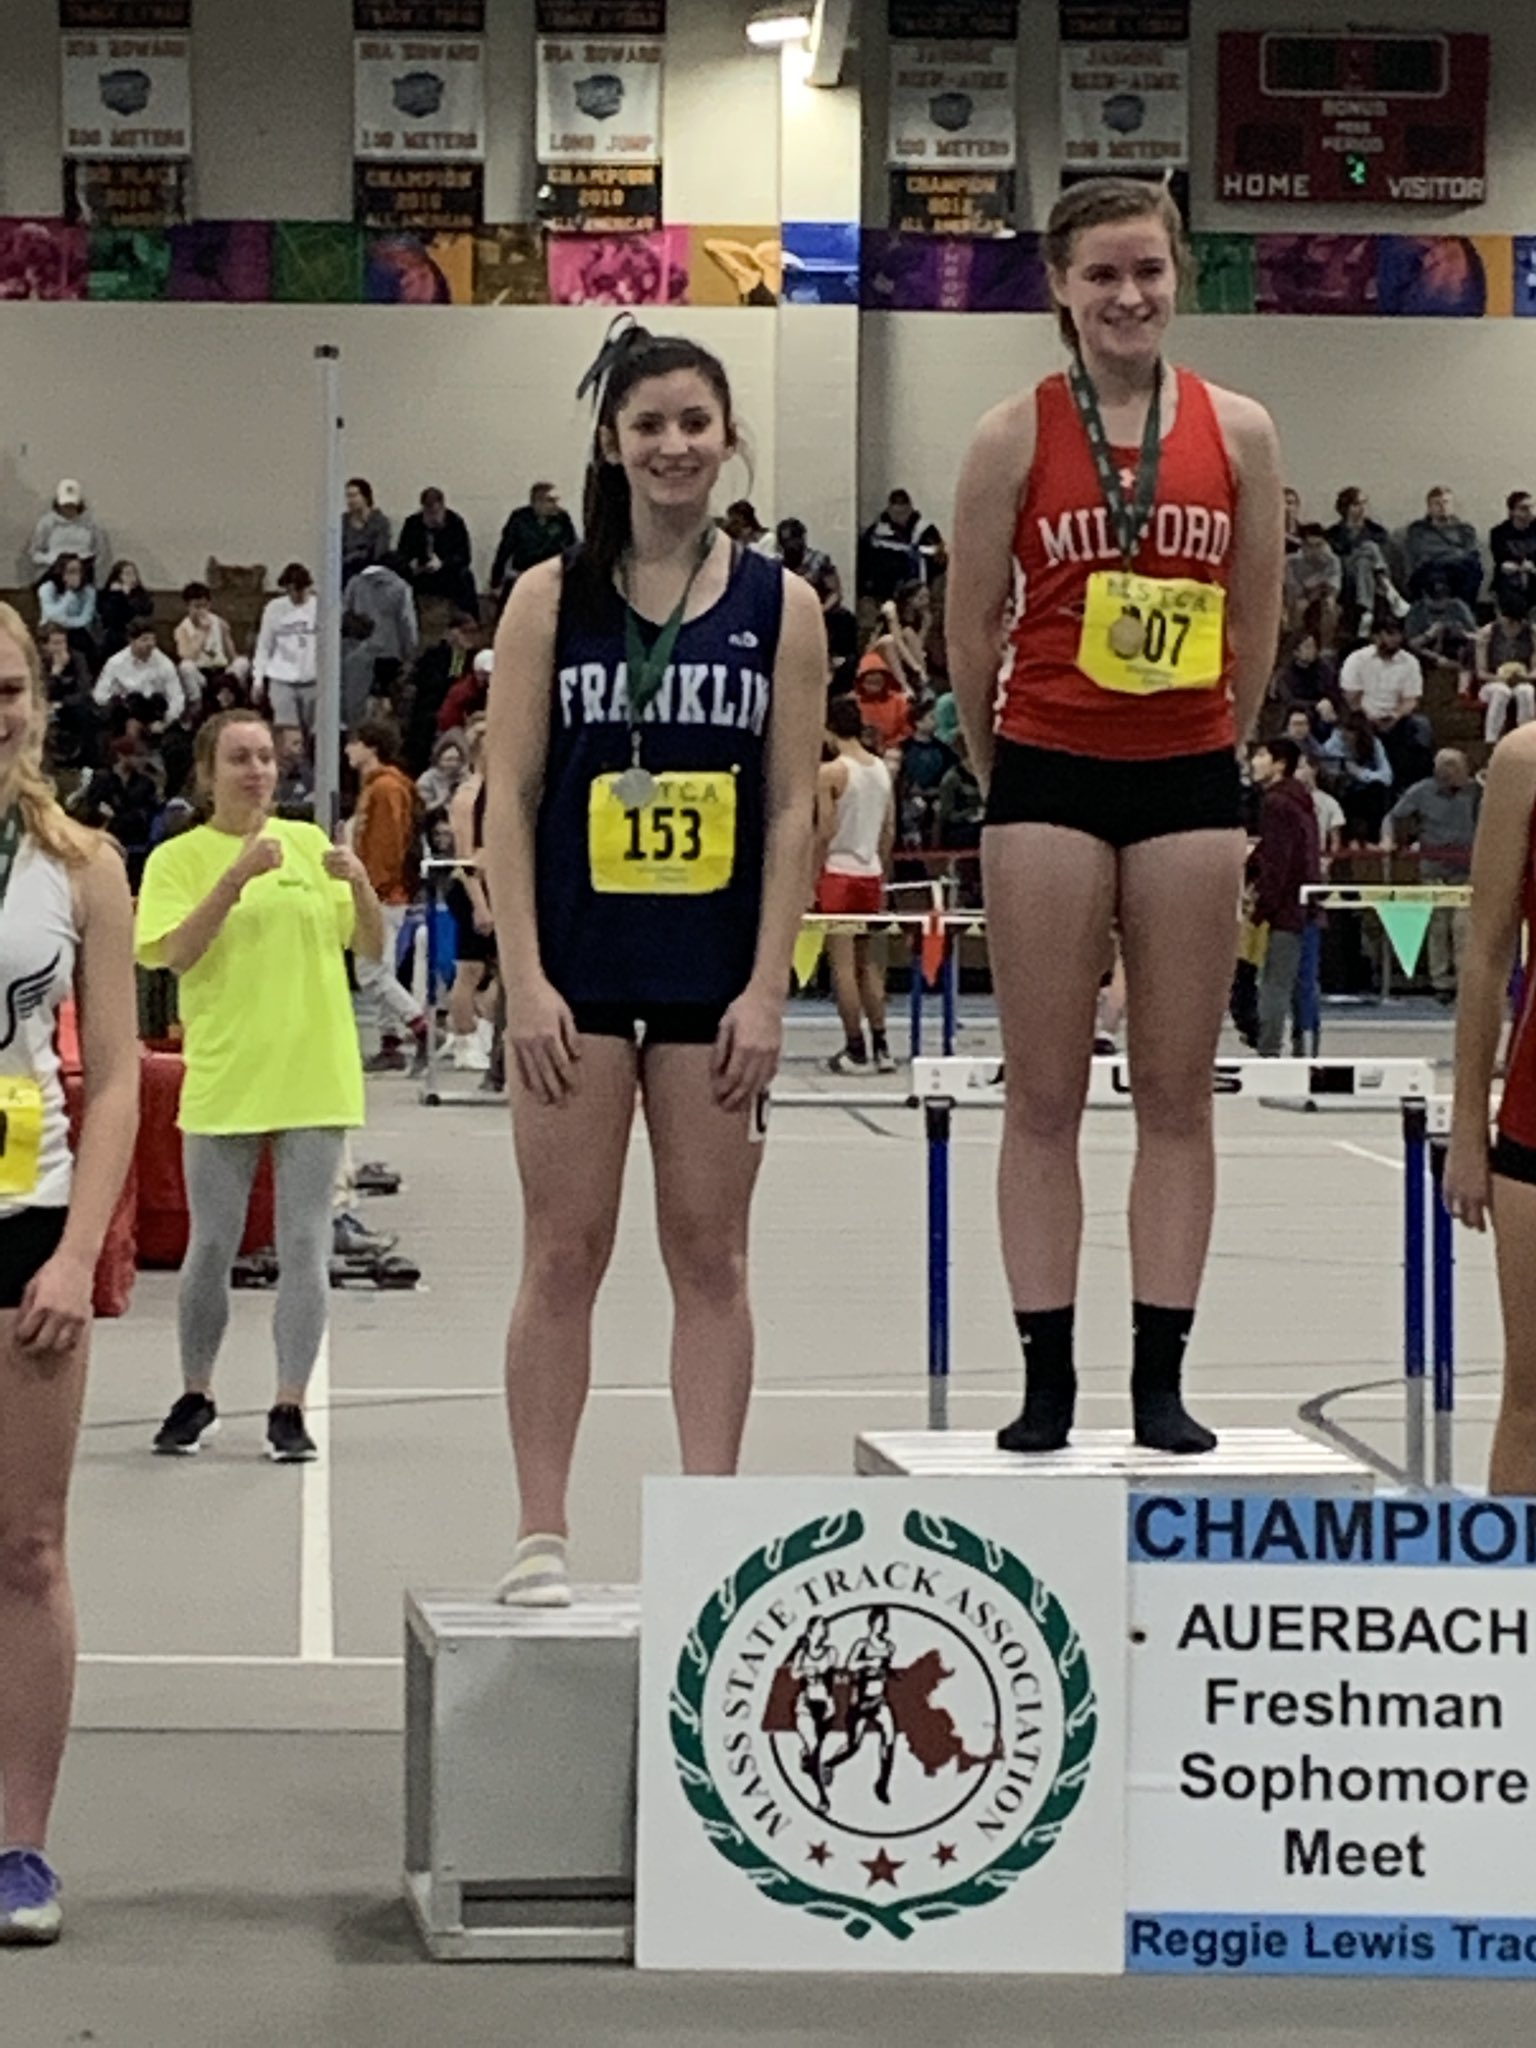 Jill Fenerty takes 2nd in the 300m race for the Fr/So meet!